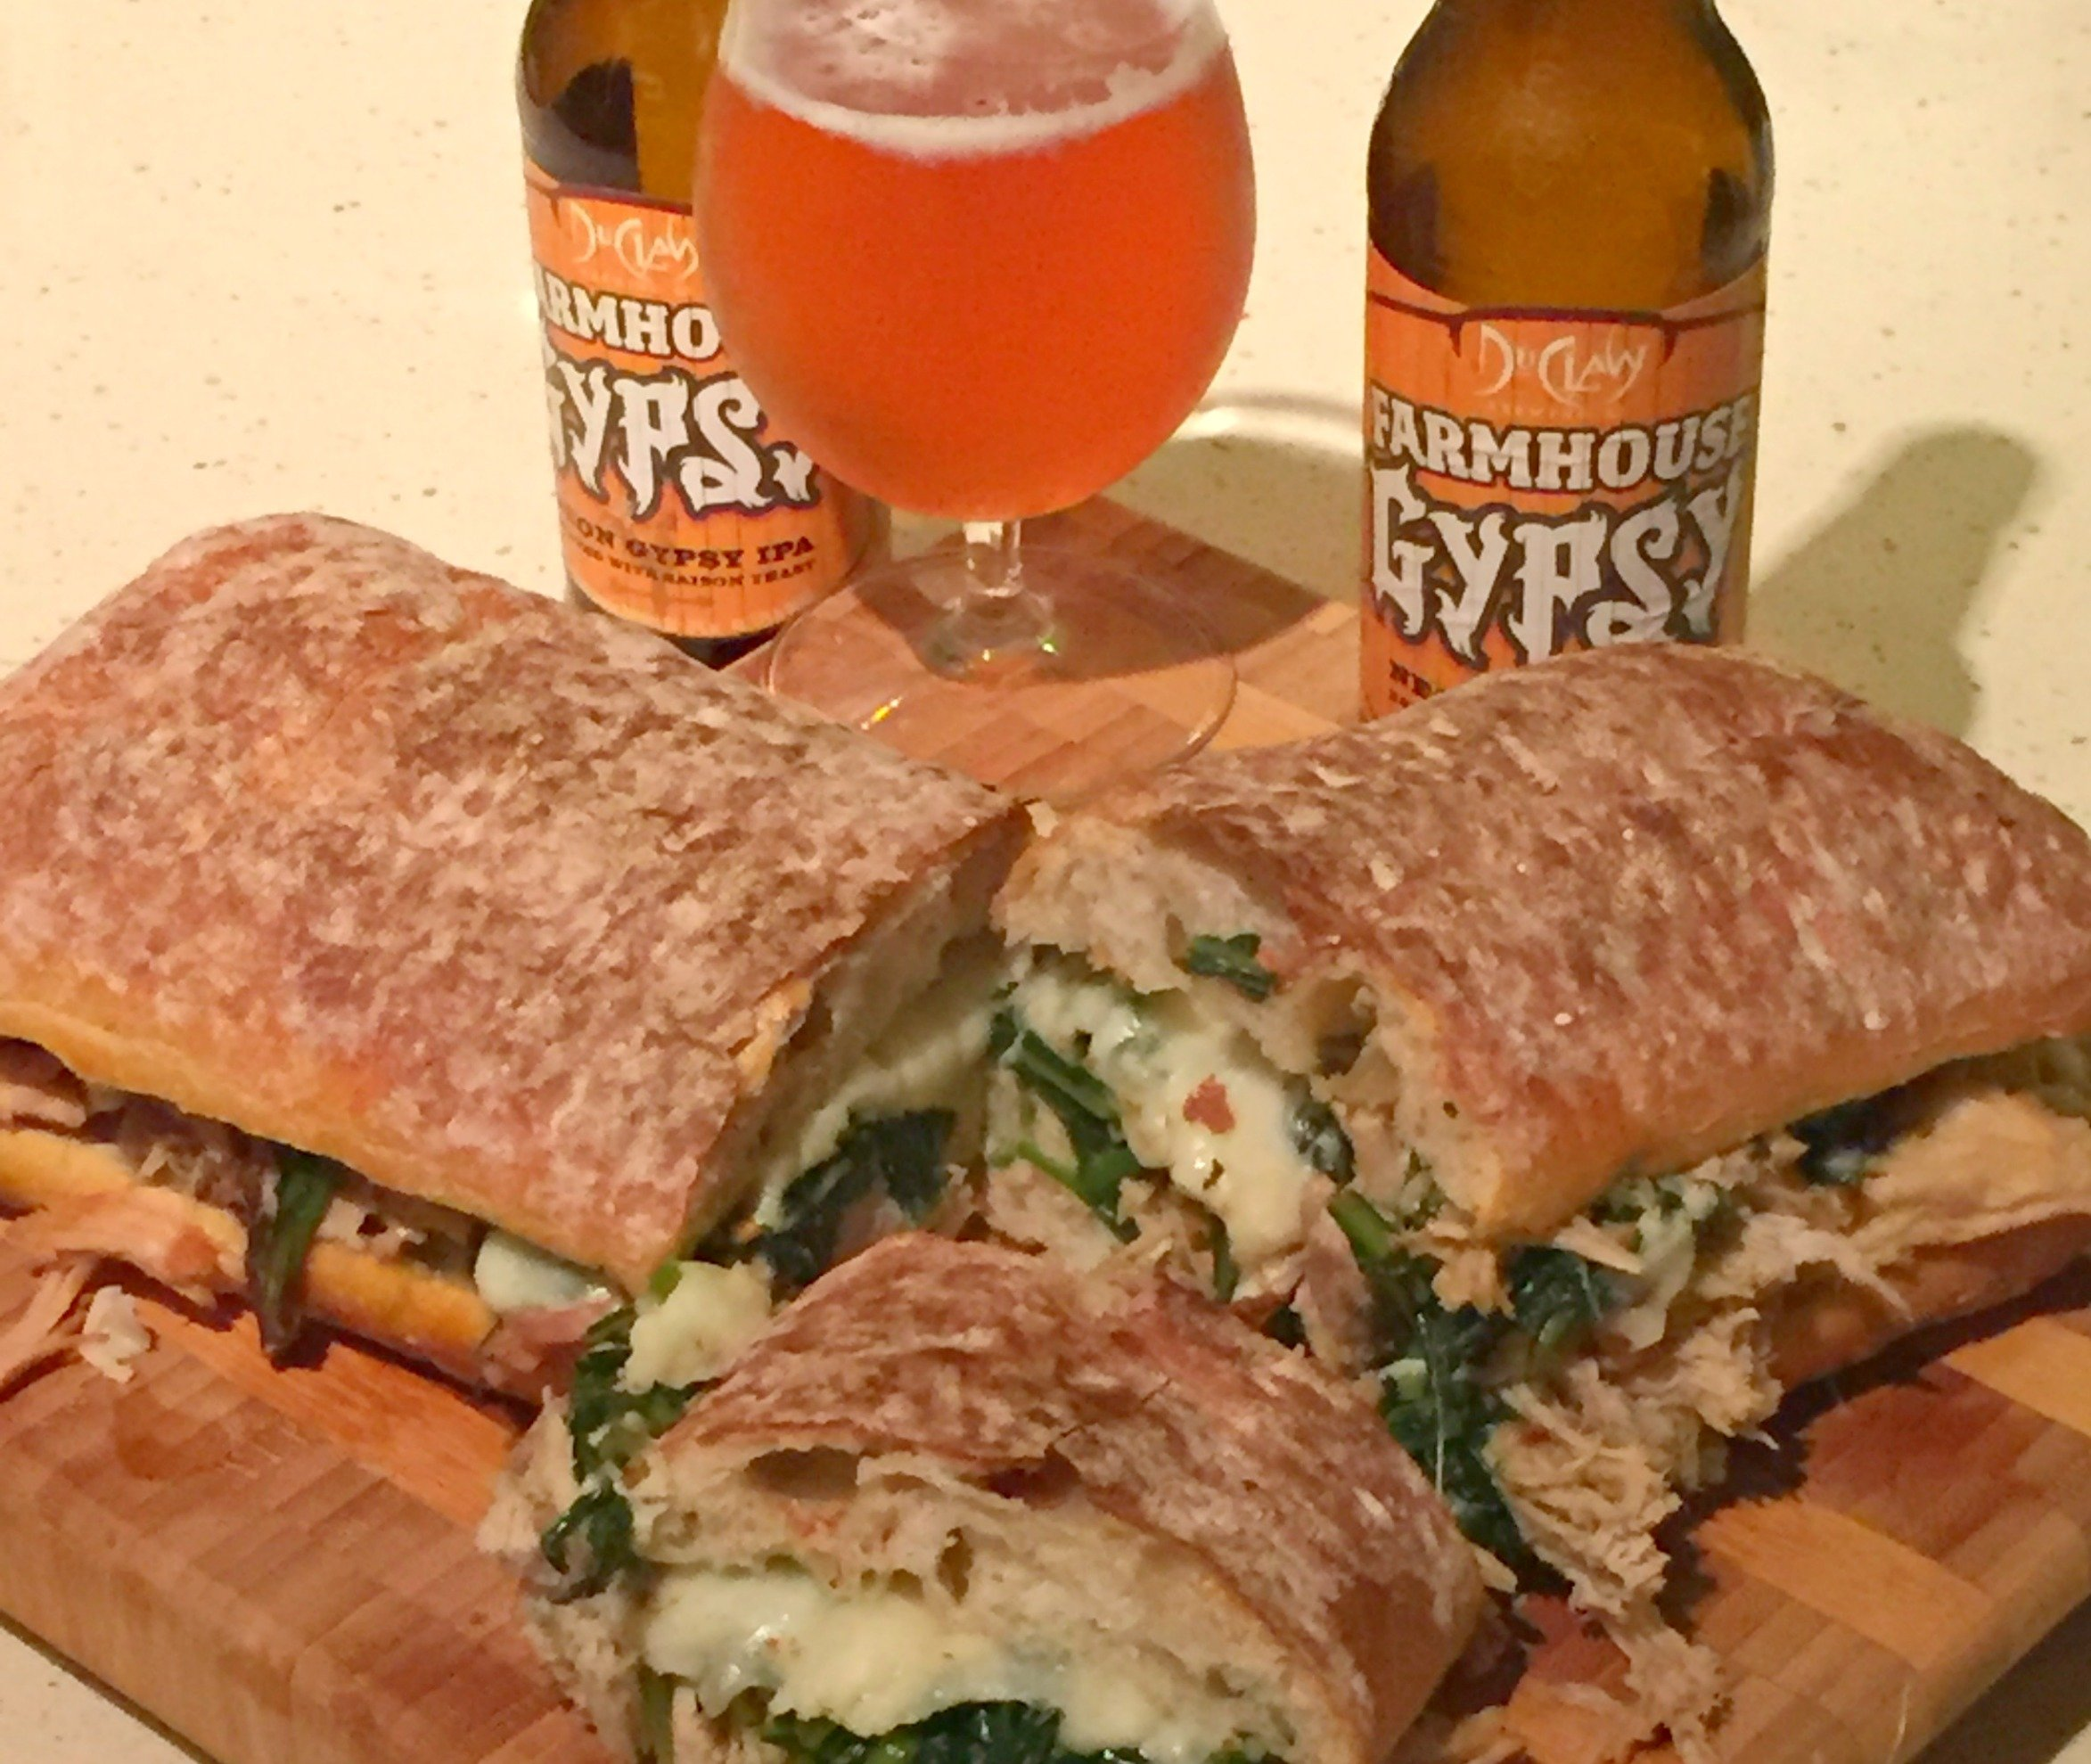 DuClaw Farmhouse Gypsy beer and sandwich